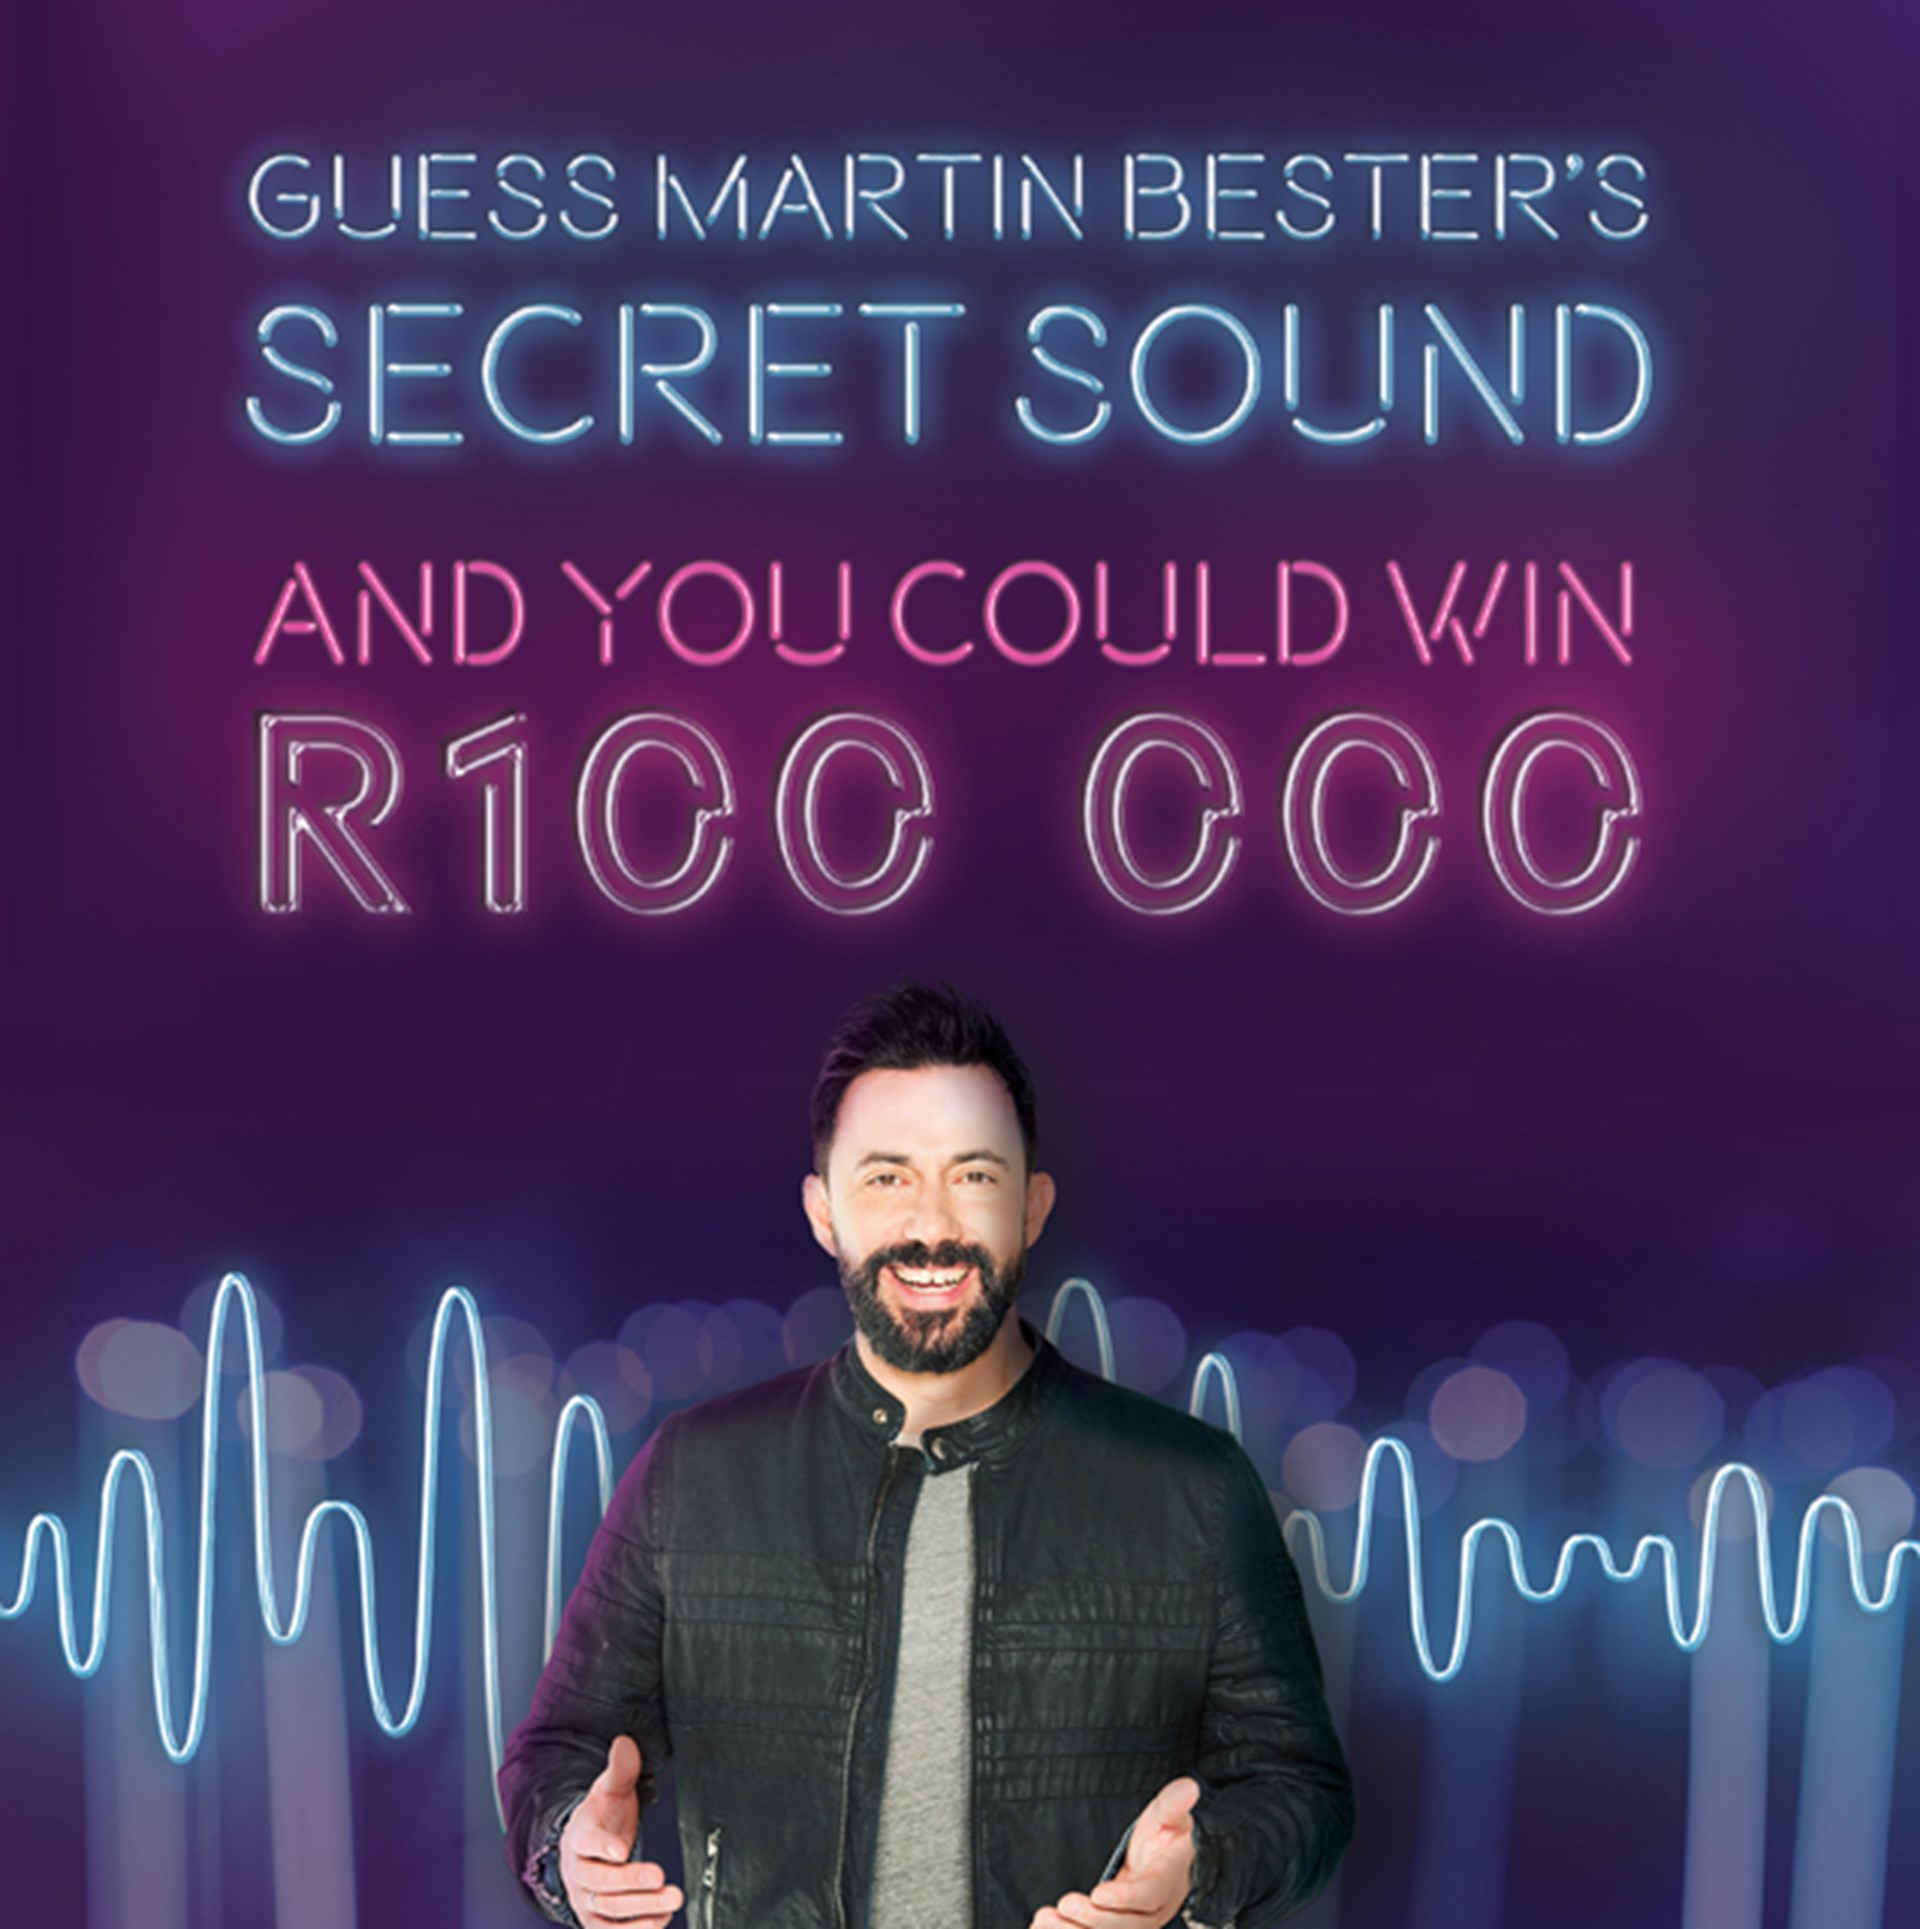 [JAC] Secret Sound Martin Bester March 23